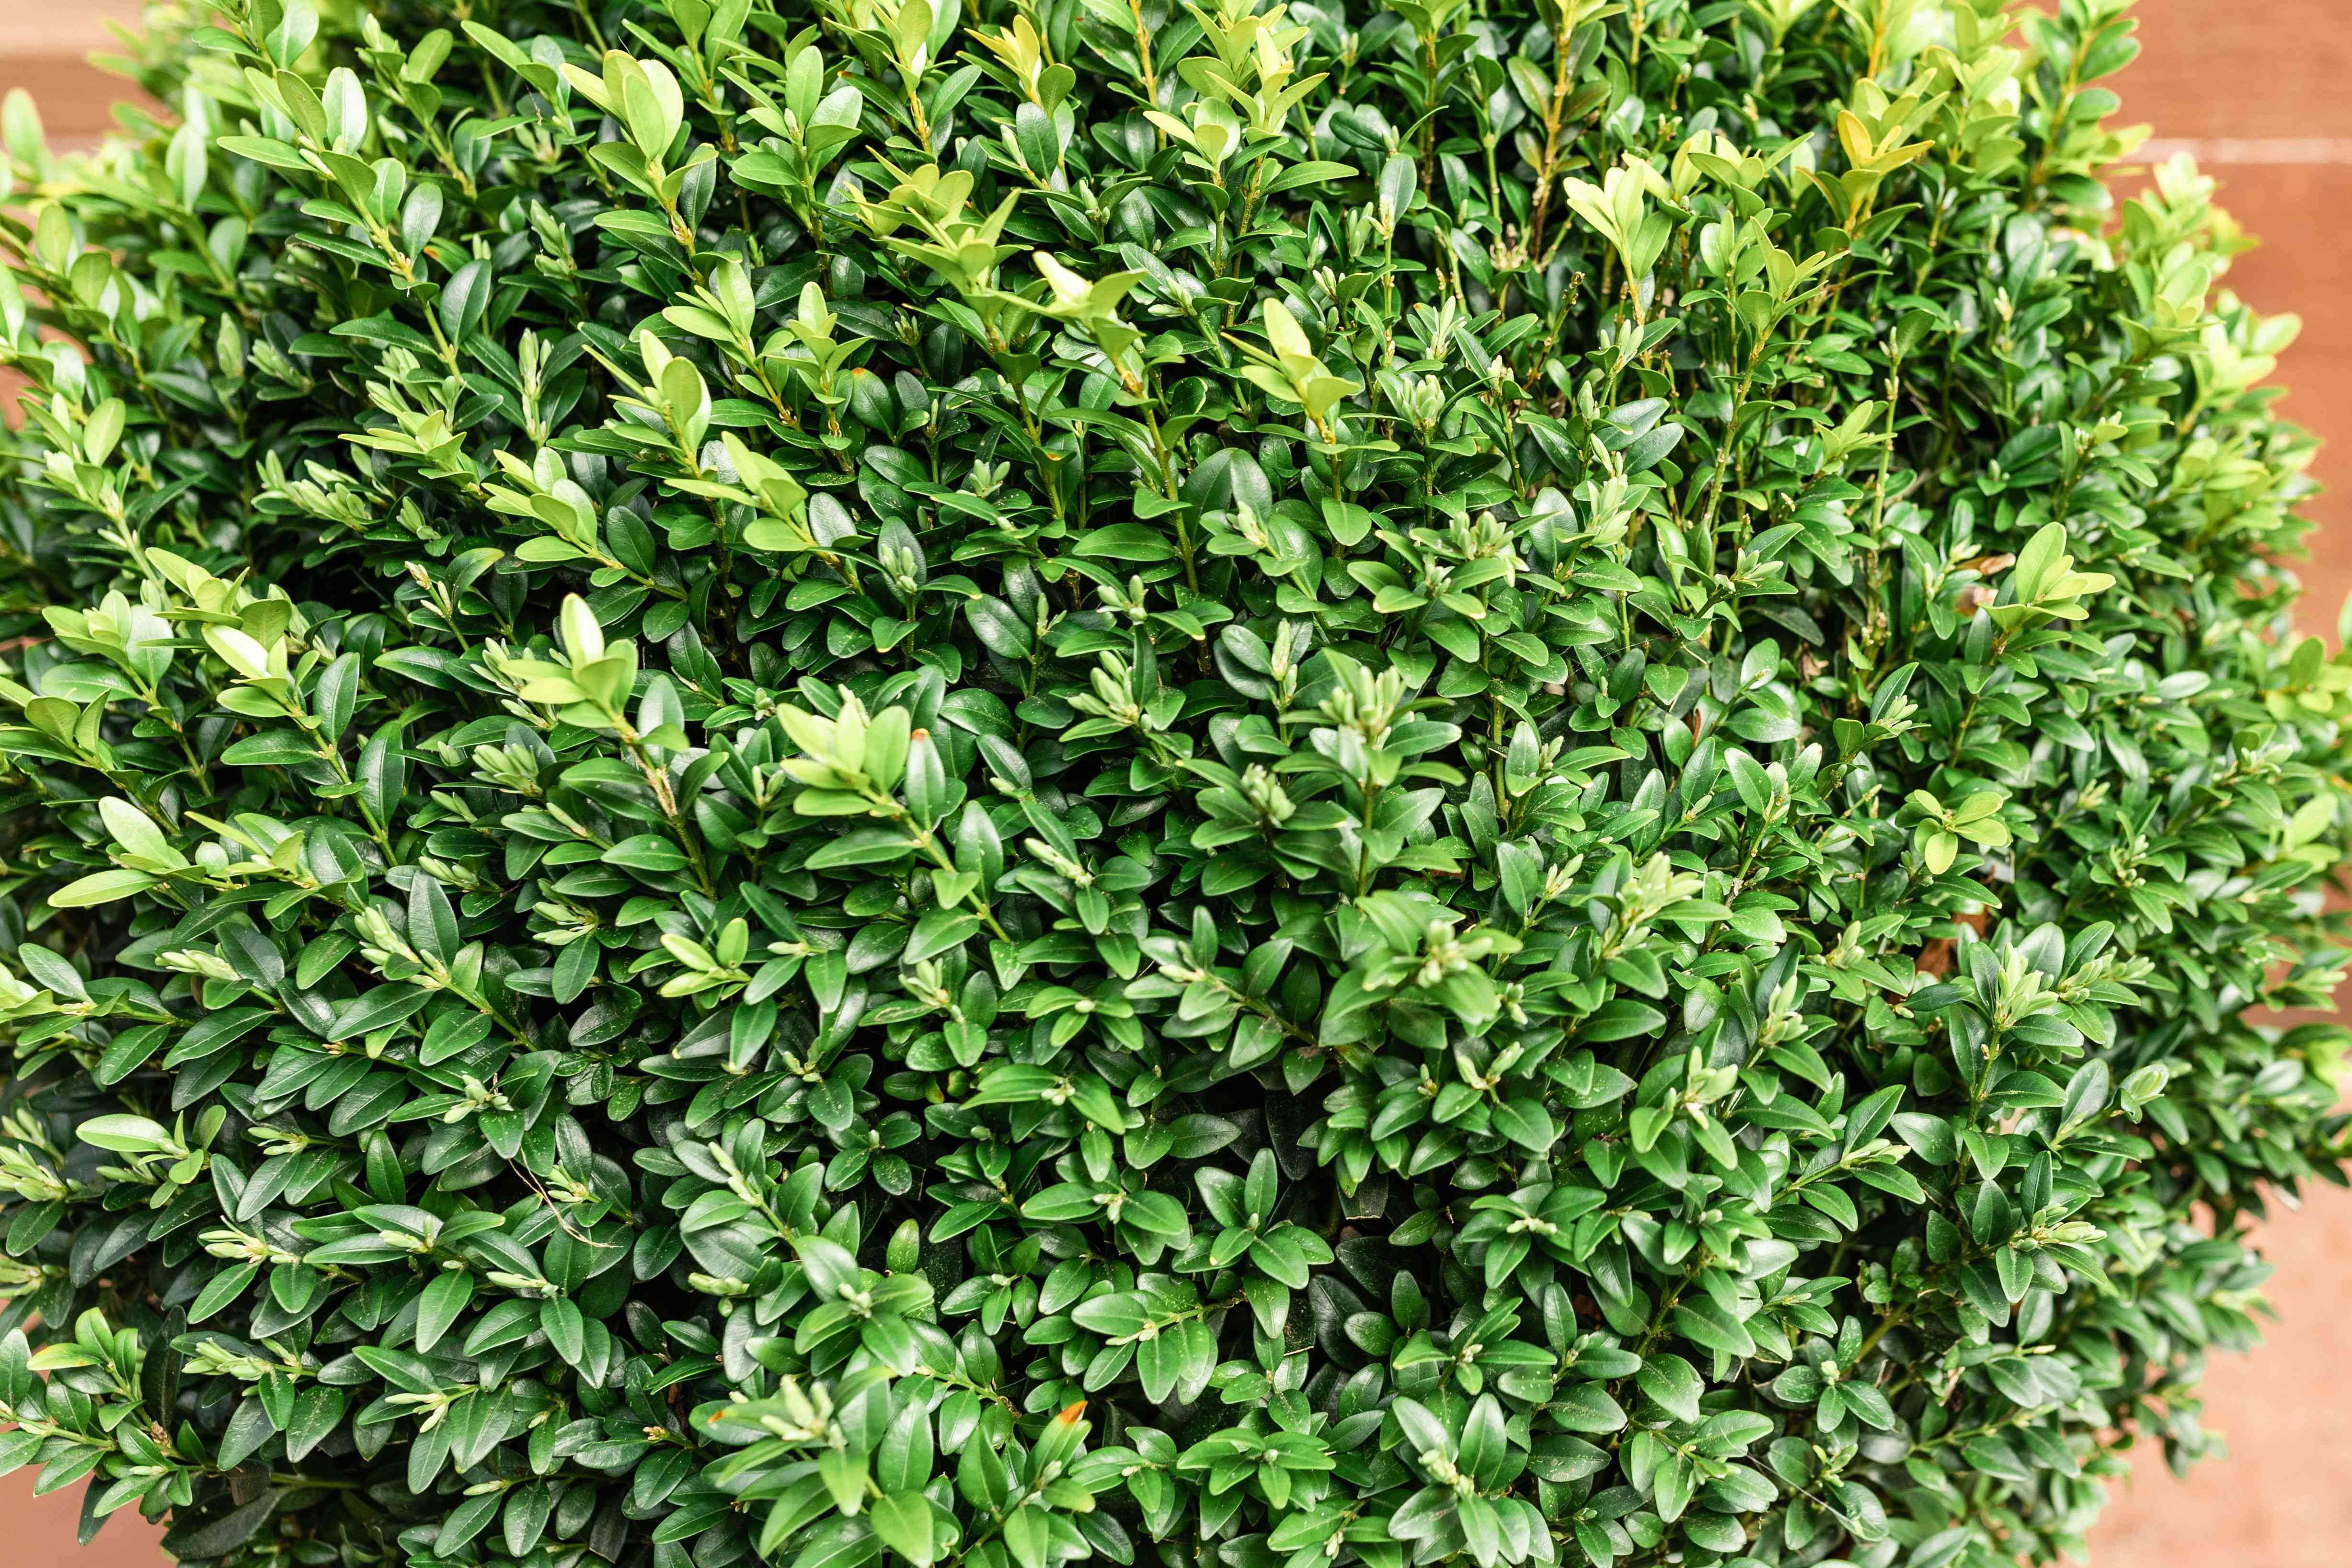 Boxwood shrub with small densely-packed leaves from above